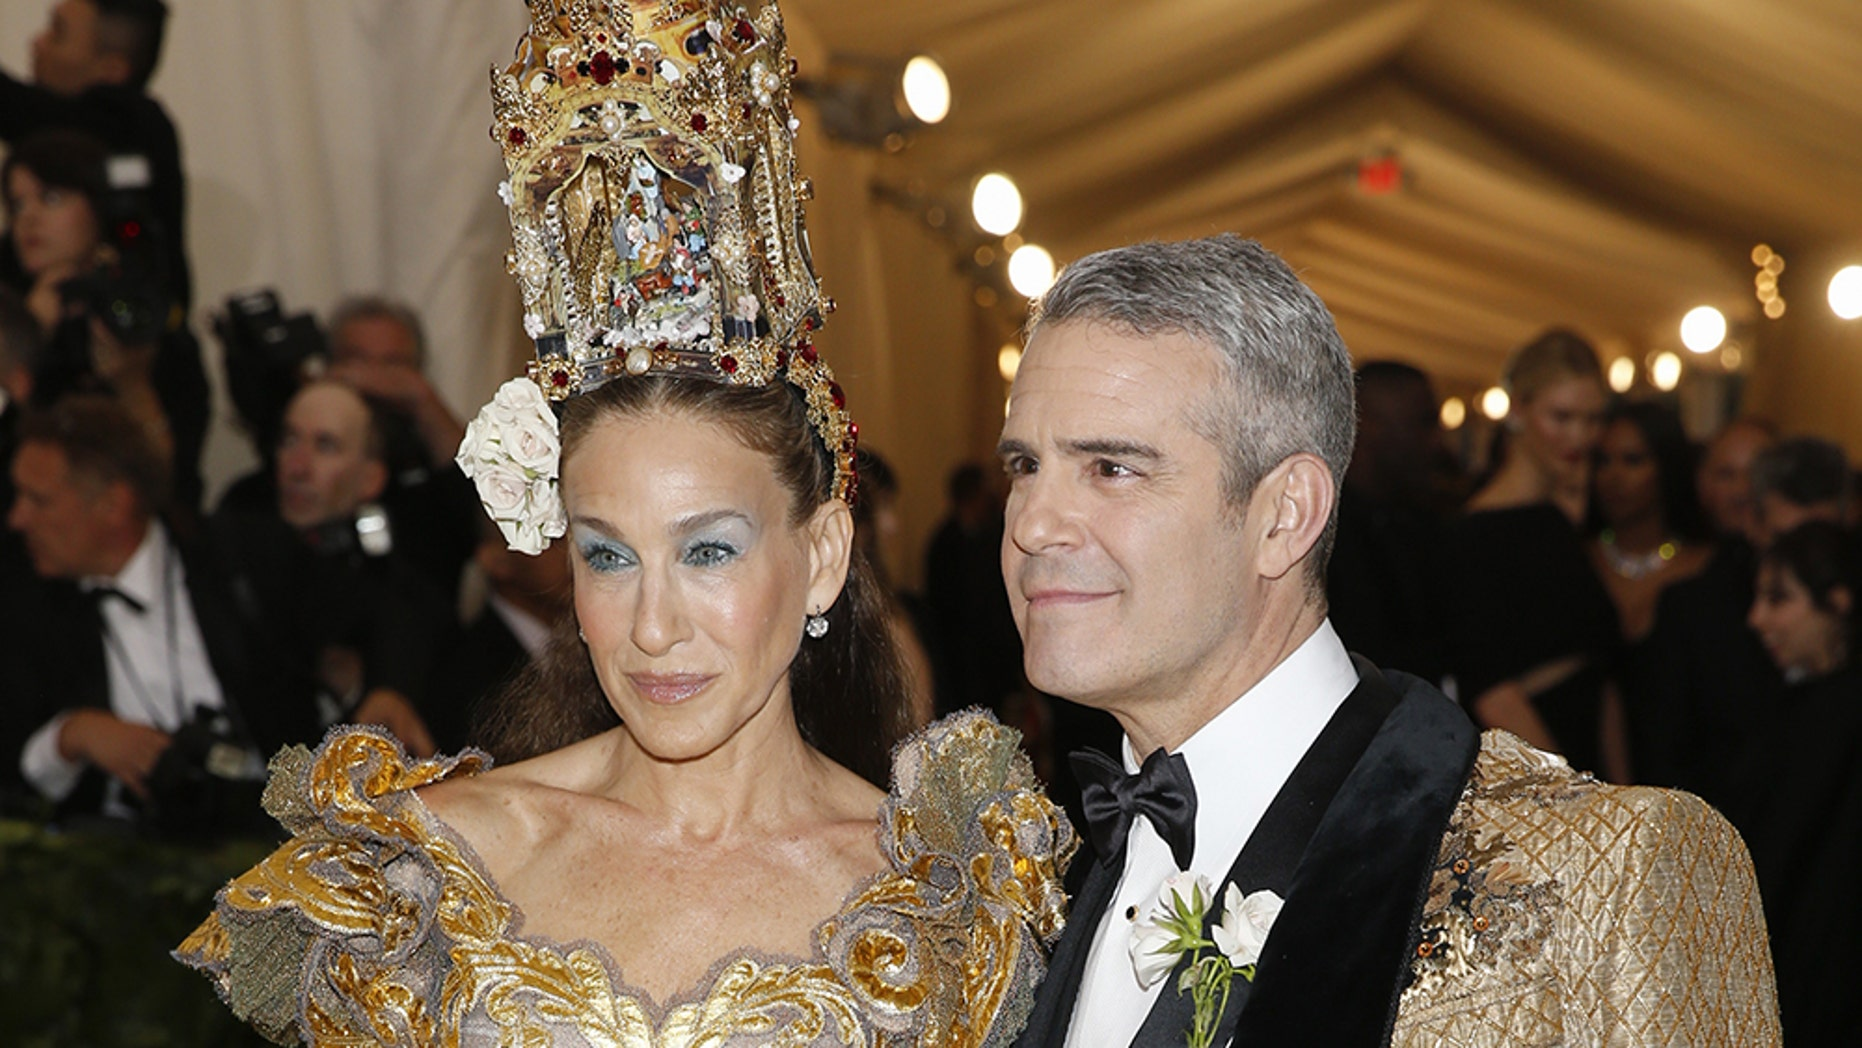 """Sarah Jessica Parker and Andy Cohen arrive at the Metropolitan Museum of Art Costume Institute Gala (Met Gala) to celebrate the opening of """"Heavenly Bodies: Fashion and the Catholic Imagination"""" in the Manhattan borough of New York, U.S., May 7, 2018."""